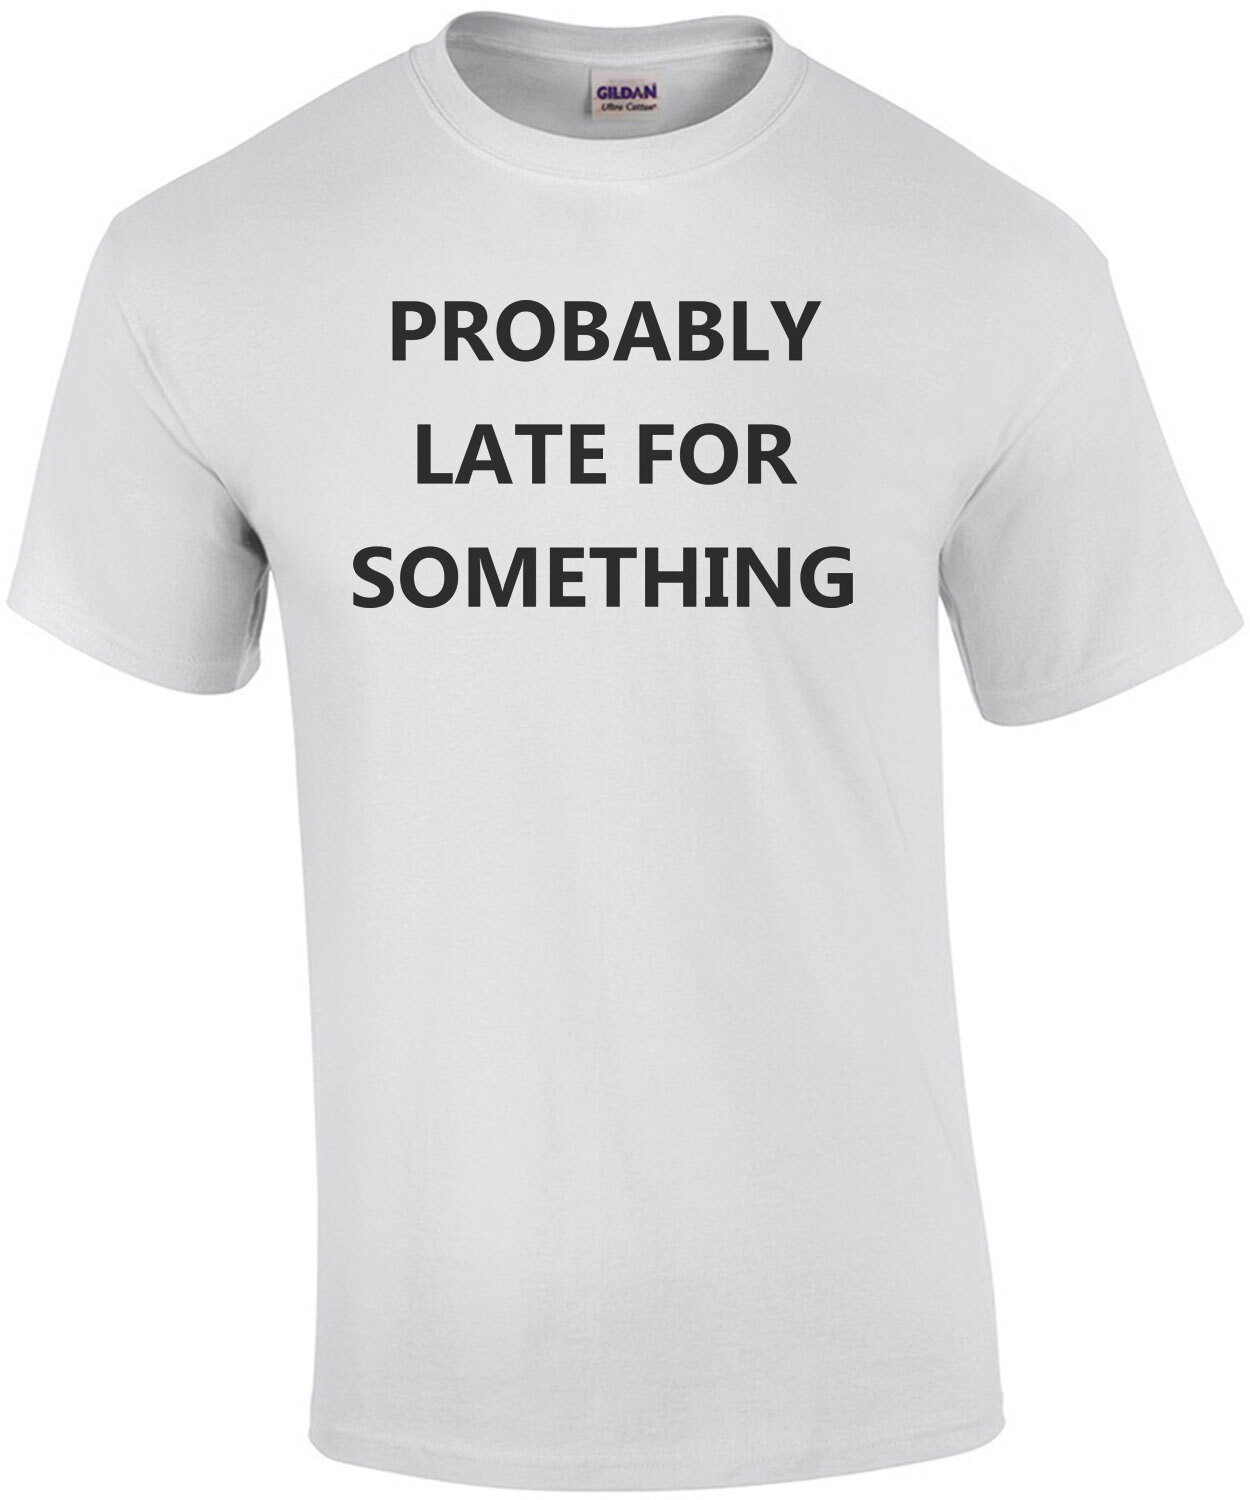 Probably late for something - funny sarcastic t-shirt